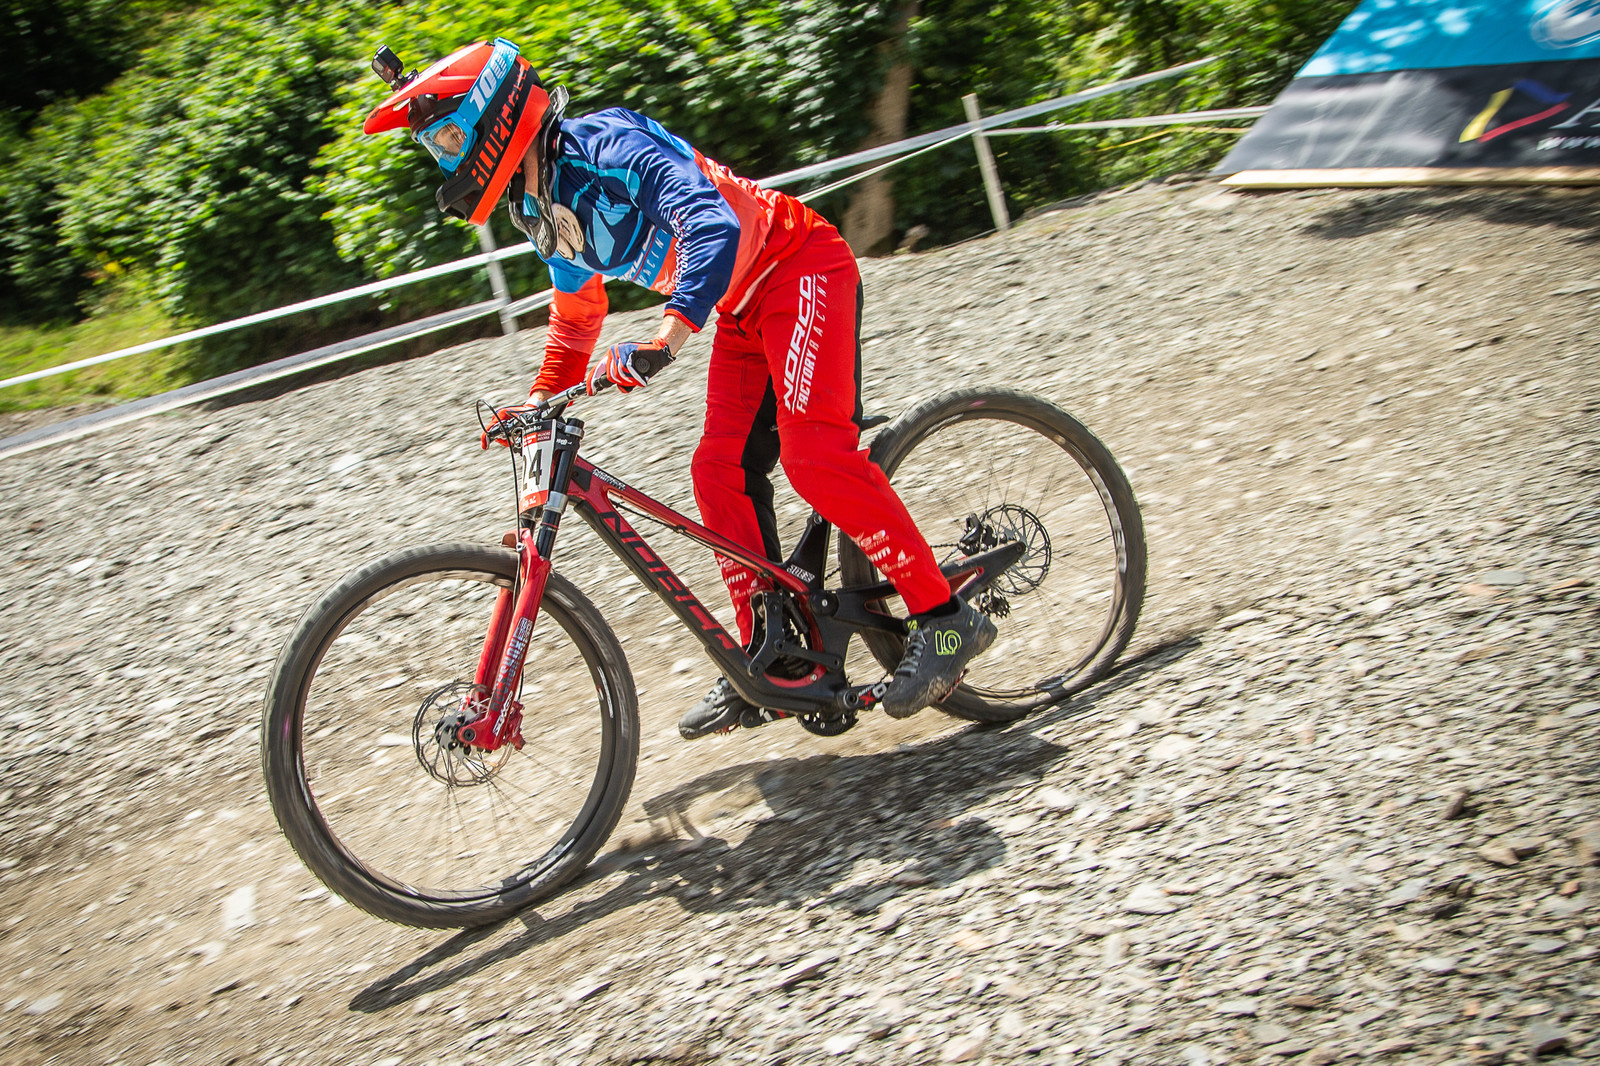 Joe Smith Norco Aurum HSP - G-Out Project - Andorra World Cup DH - Mountain Biking Pictures - Vital MTB